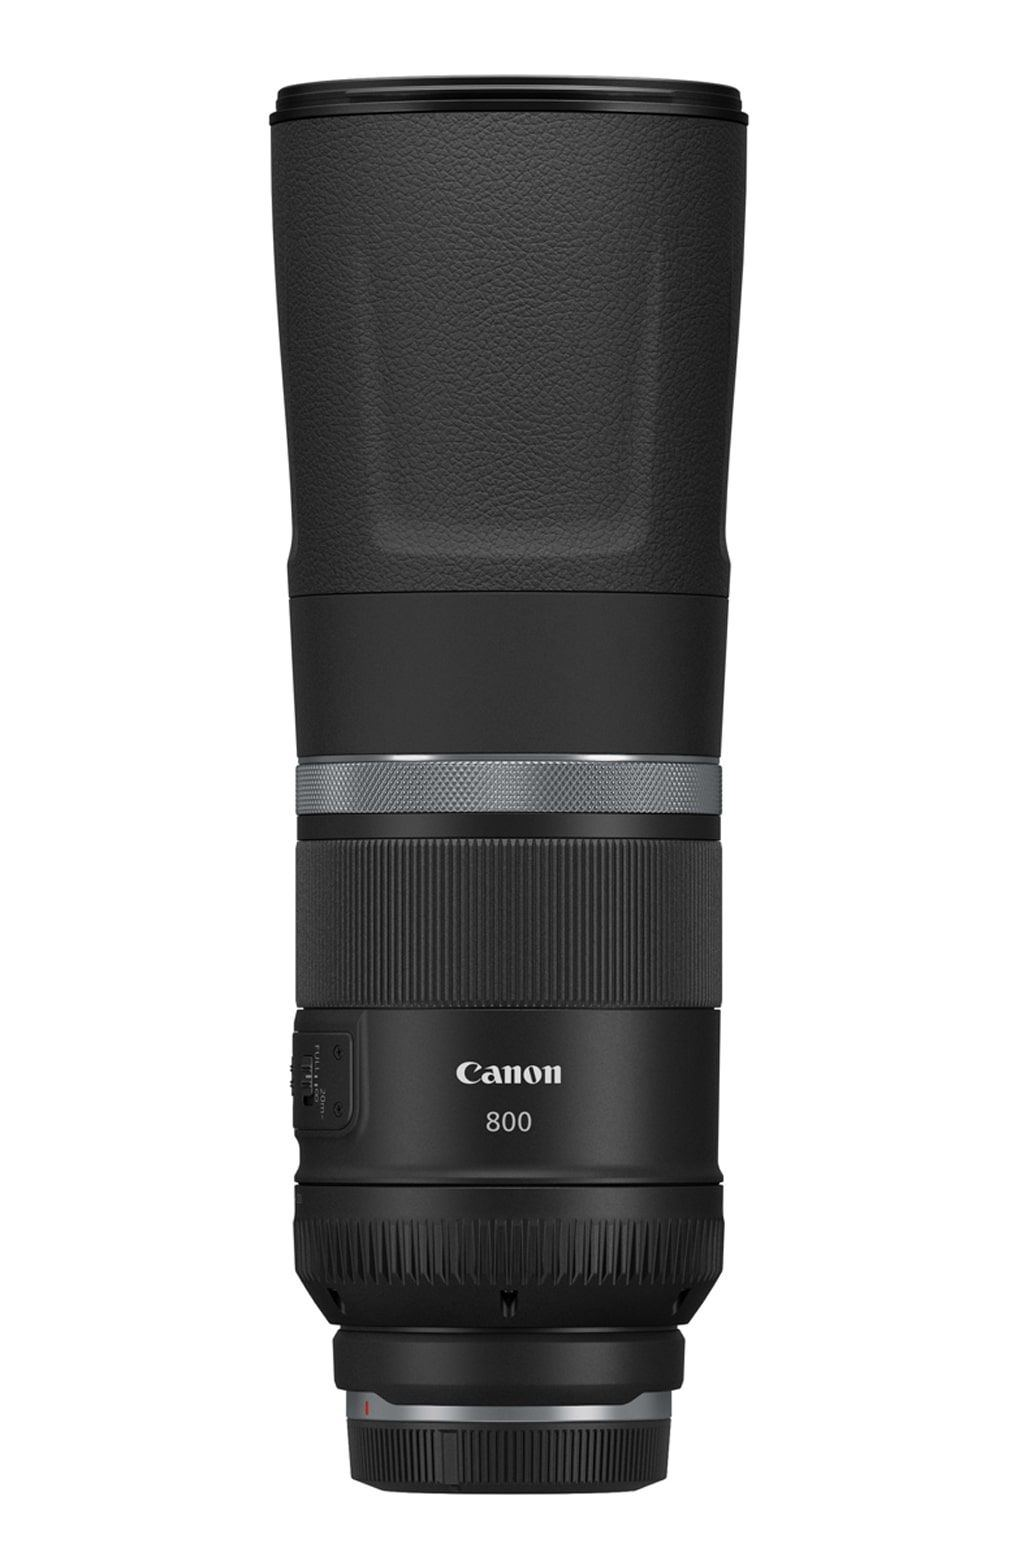 Canon RF 800mm 1:11 IS STM